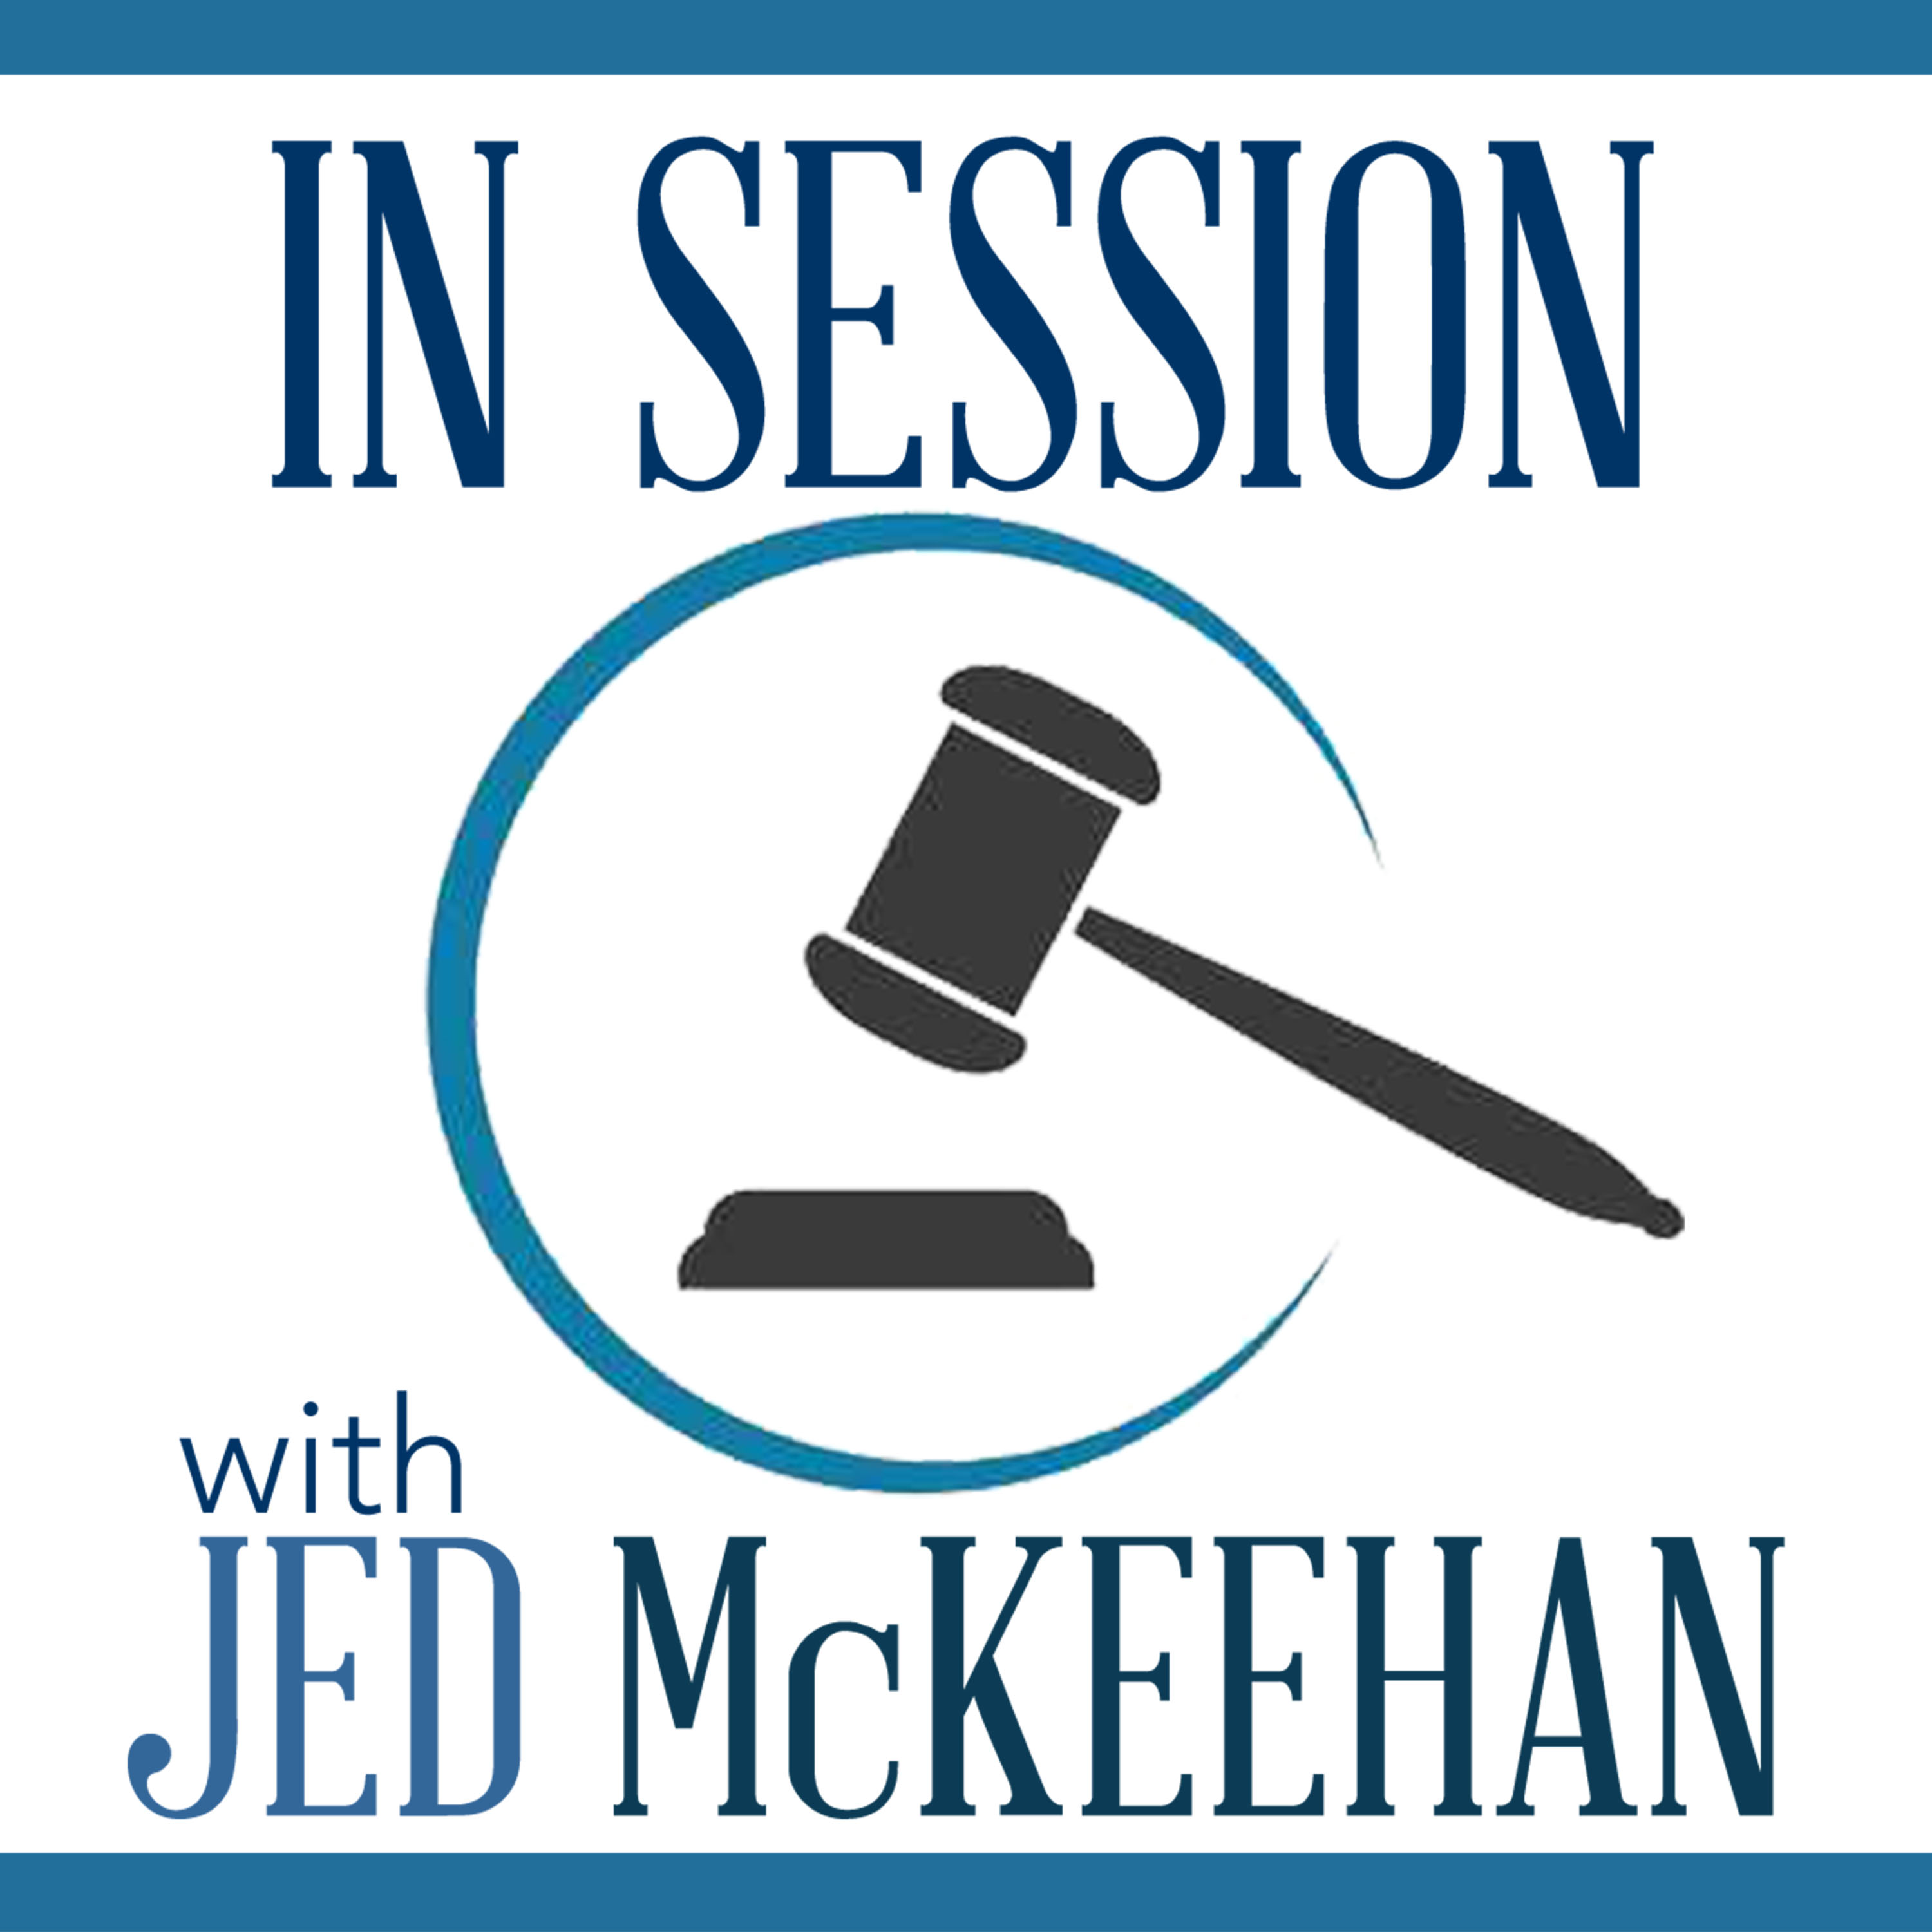 In Session with Knoxville Attorney Jed McKeehan - Episode 33: Difference between Plaintiff and Defendant